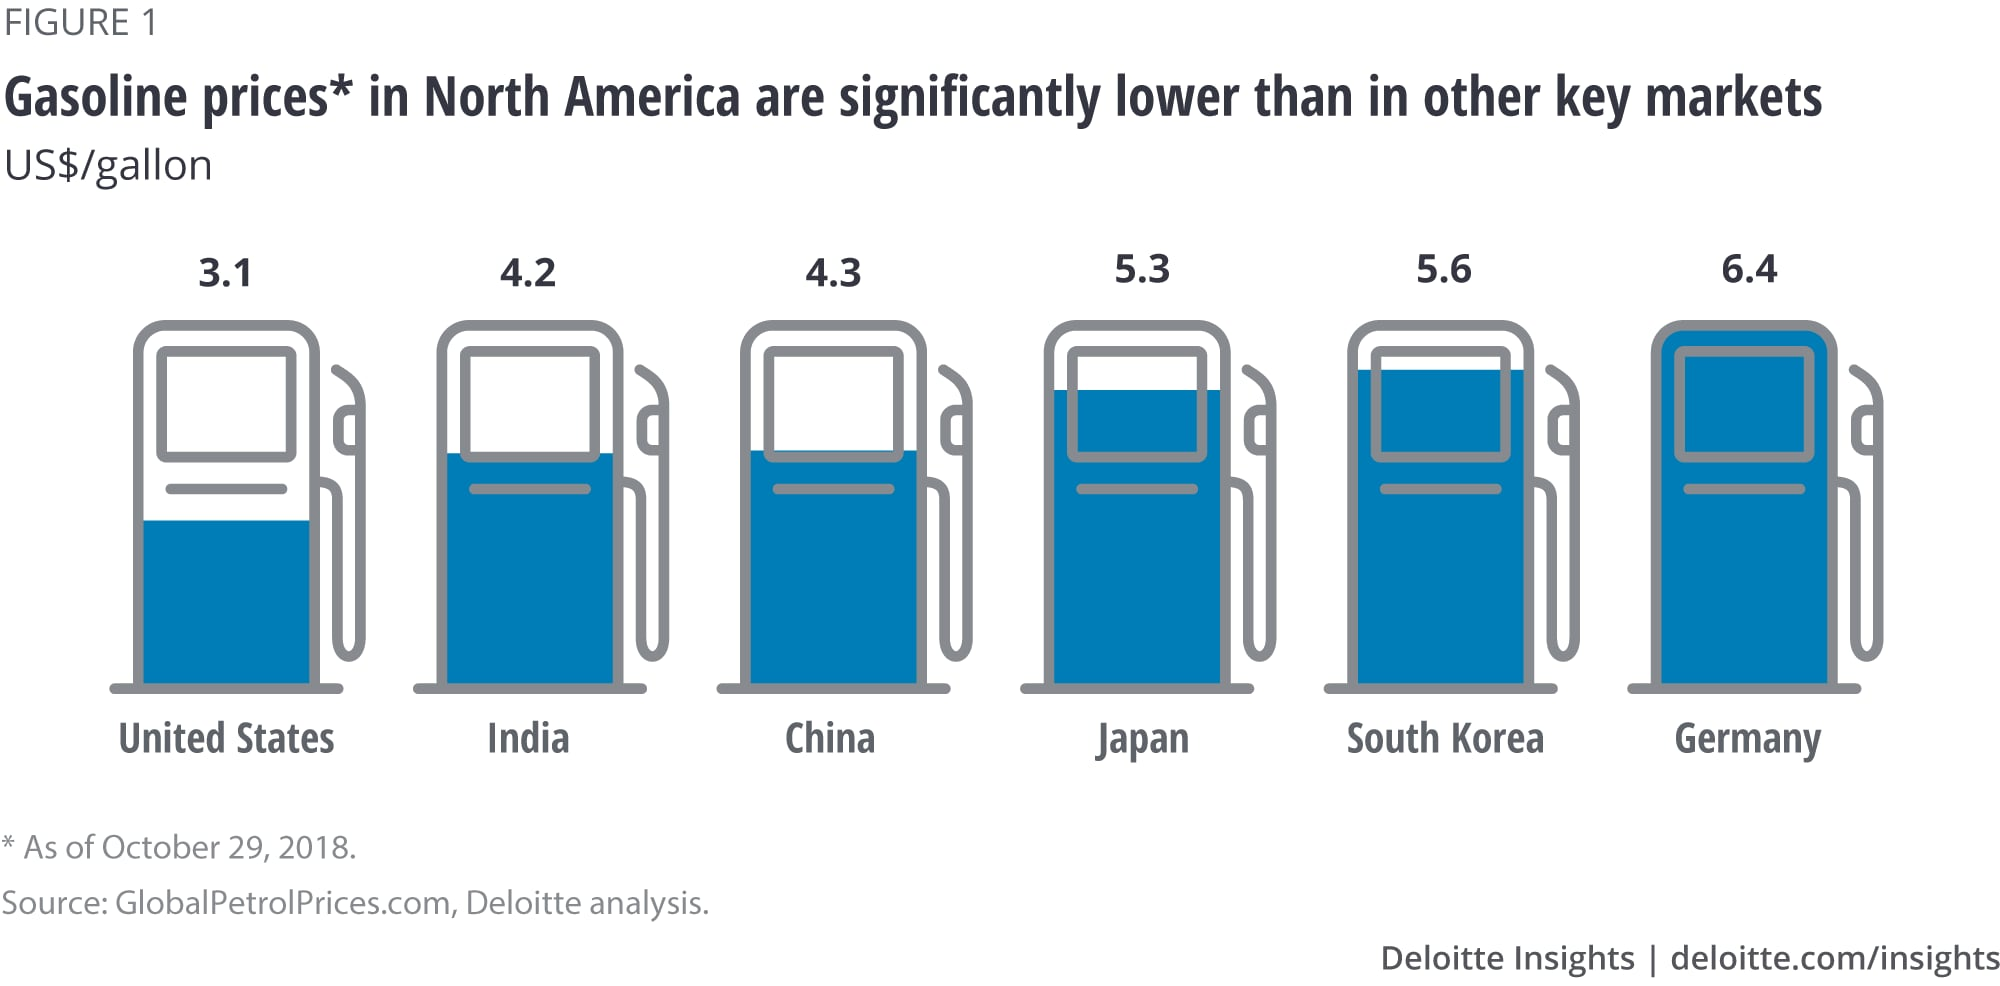 Gasoline prices* in North America are significantly lower than in other key markets